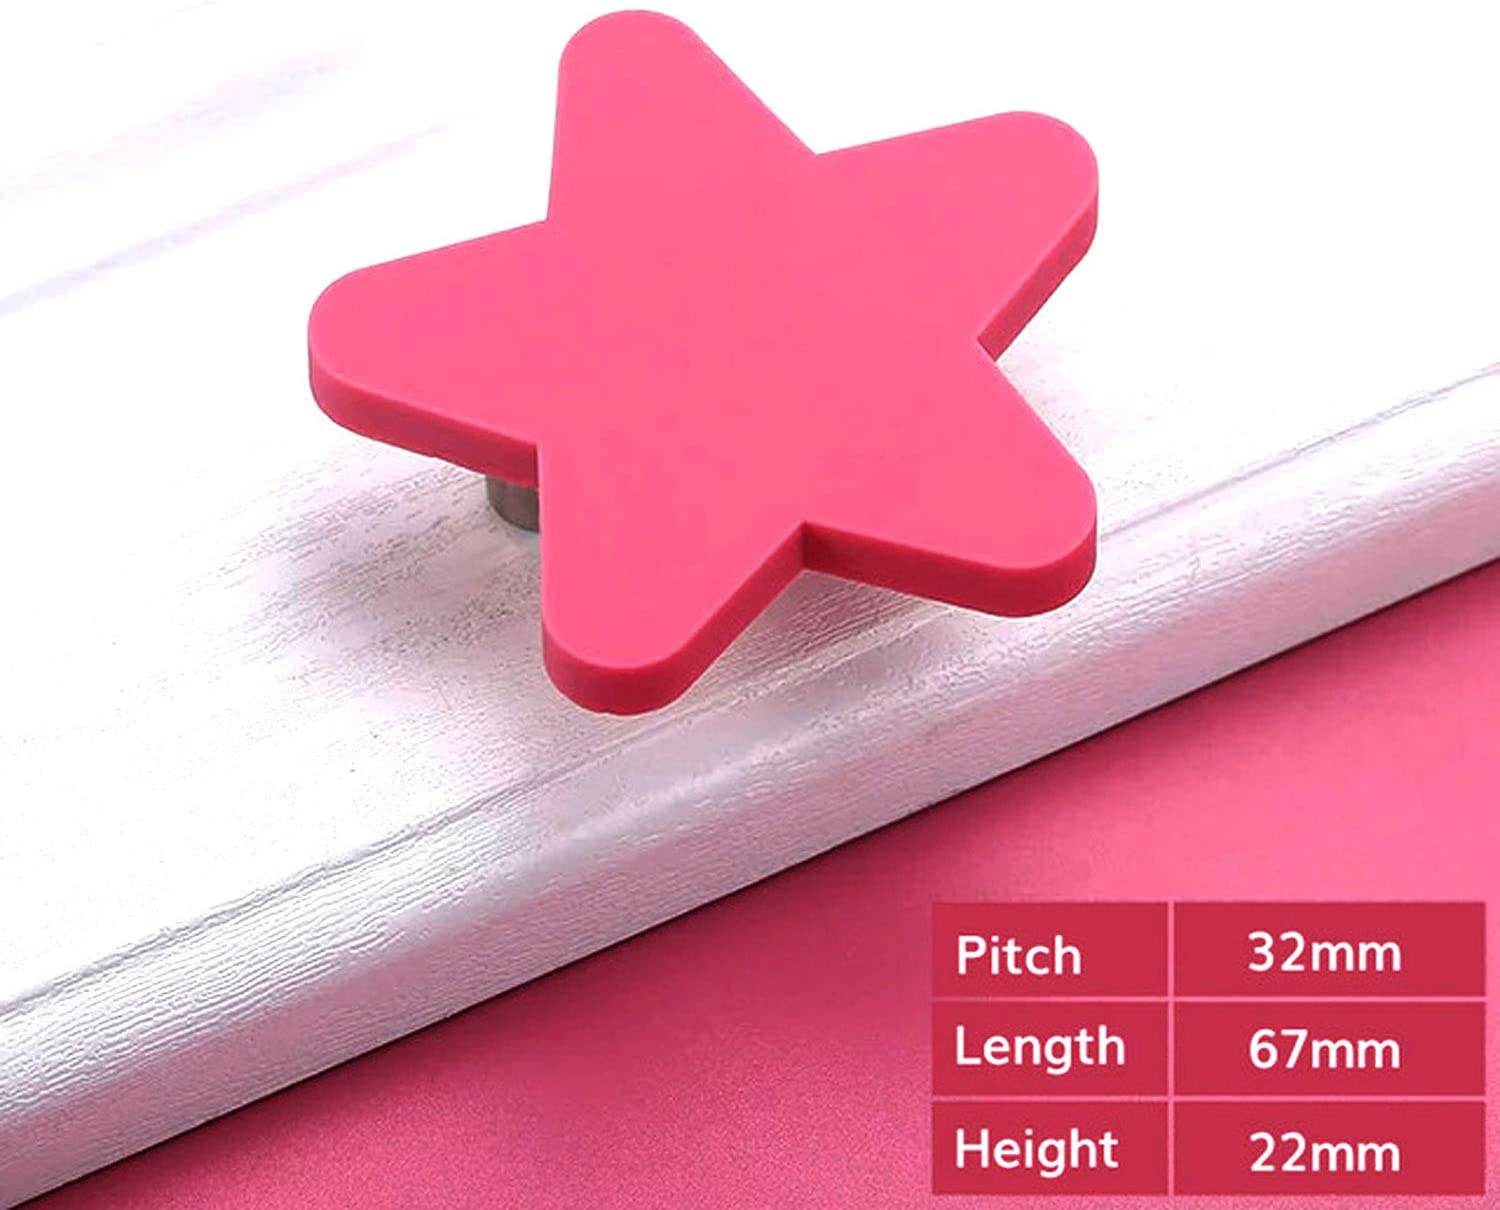 SAISN Kids Dresser Knobs for Bedroom Cute Drawer Knobs Cabinet Pulls and Knobs with Safety Soft Rubber S-Pink Flower, 2 Pack